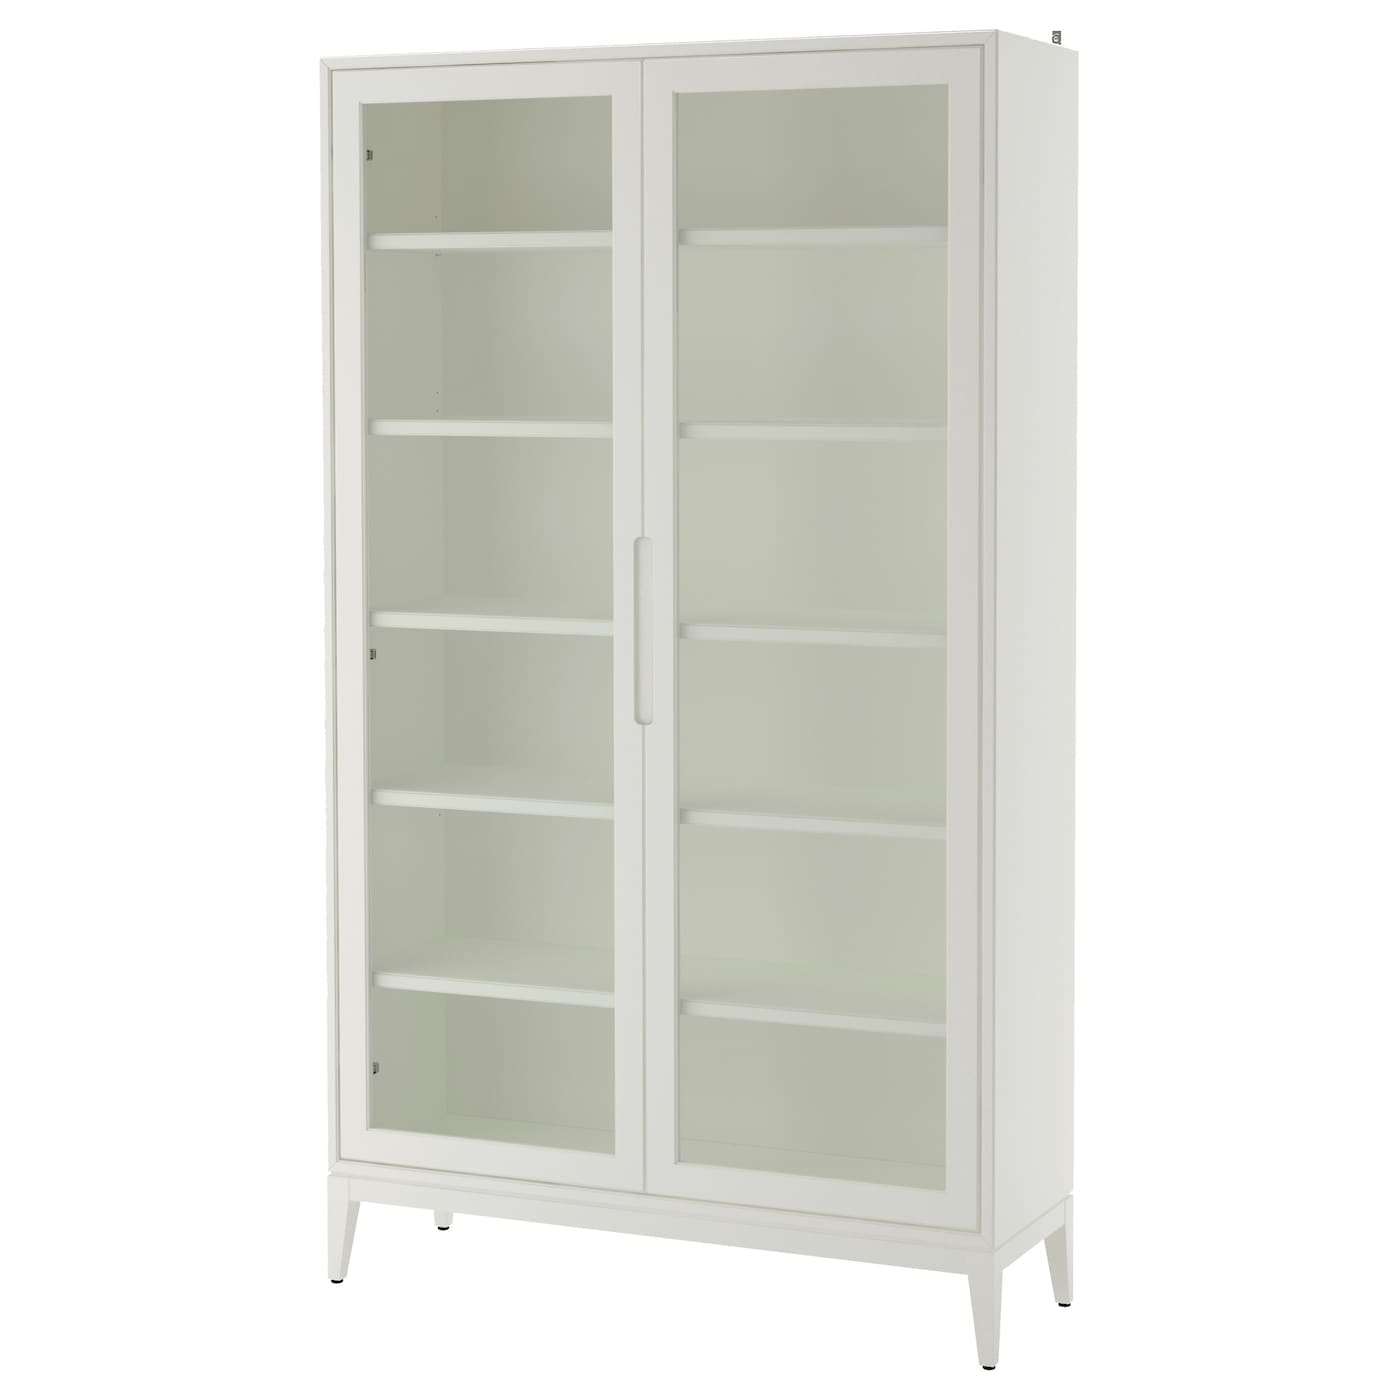 Ikea RegissÖr Gl Door Cabinet Adjule Shelves So You Can Customise Your Storage As